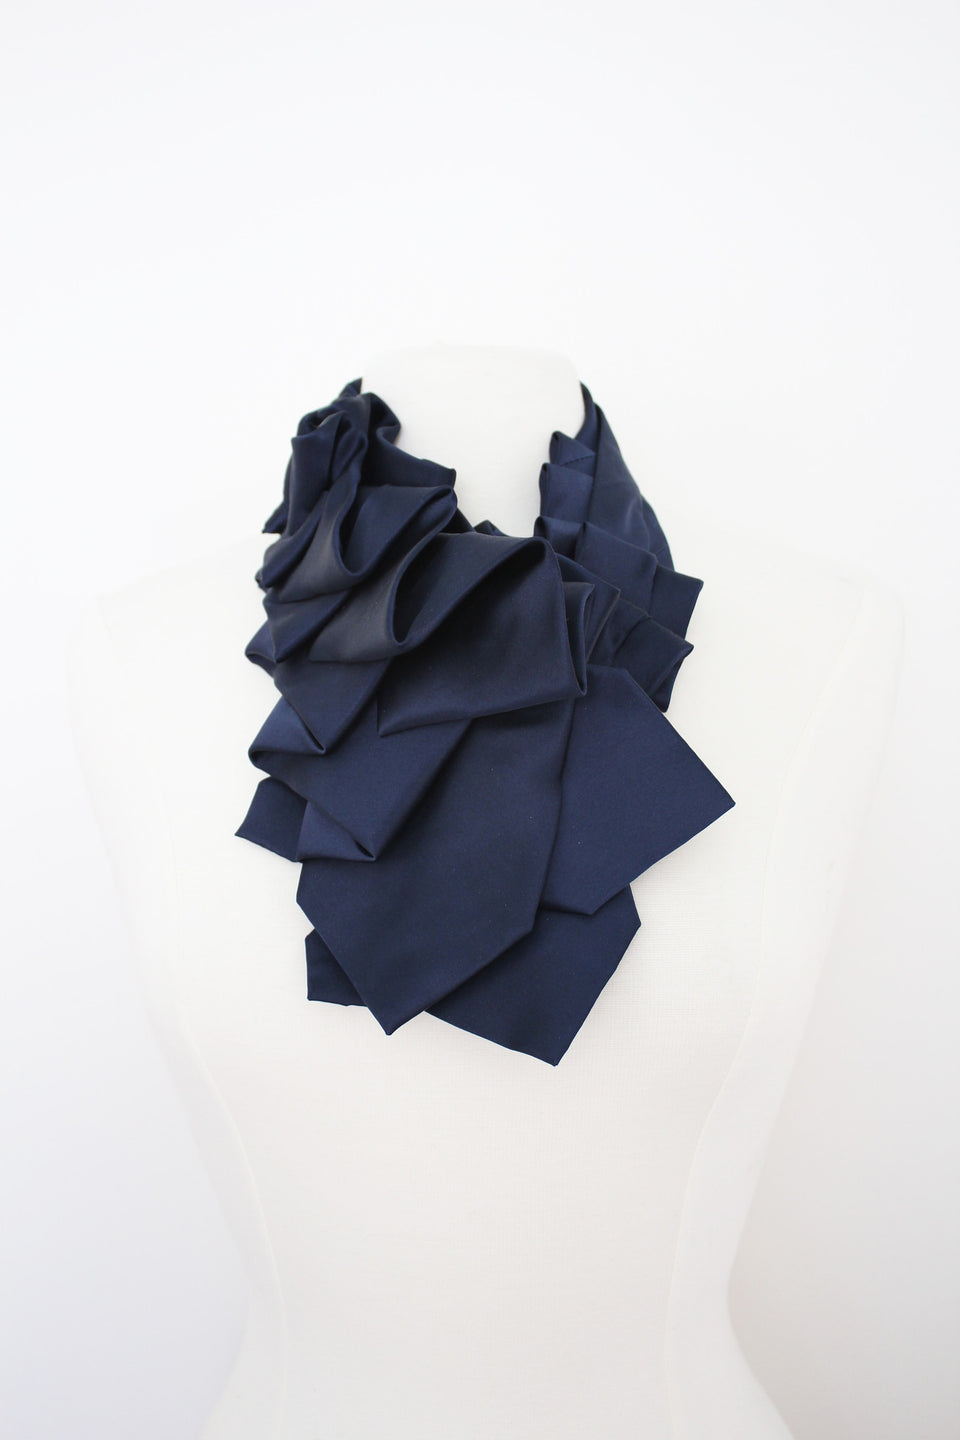 Handmade-modernmaker-curated-couture-ascot-ruffled-cravat-neckite-accessory-satin-navy-tuxedo